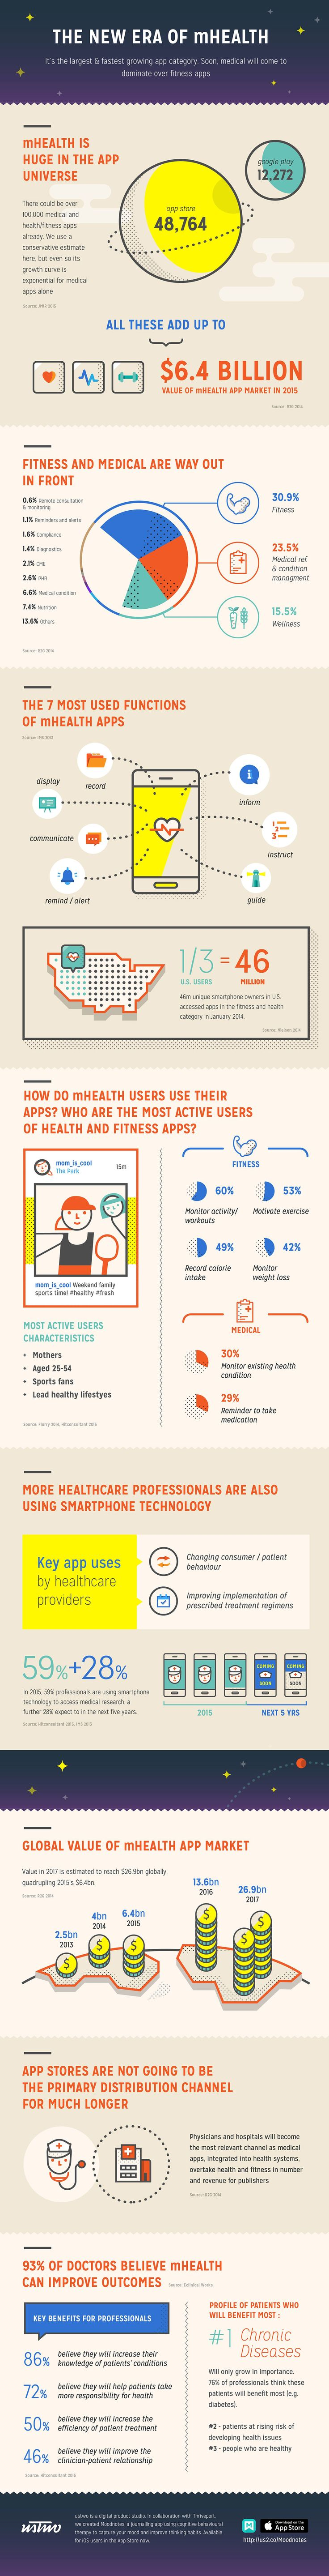 mHealth and ustwo infographic